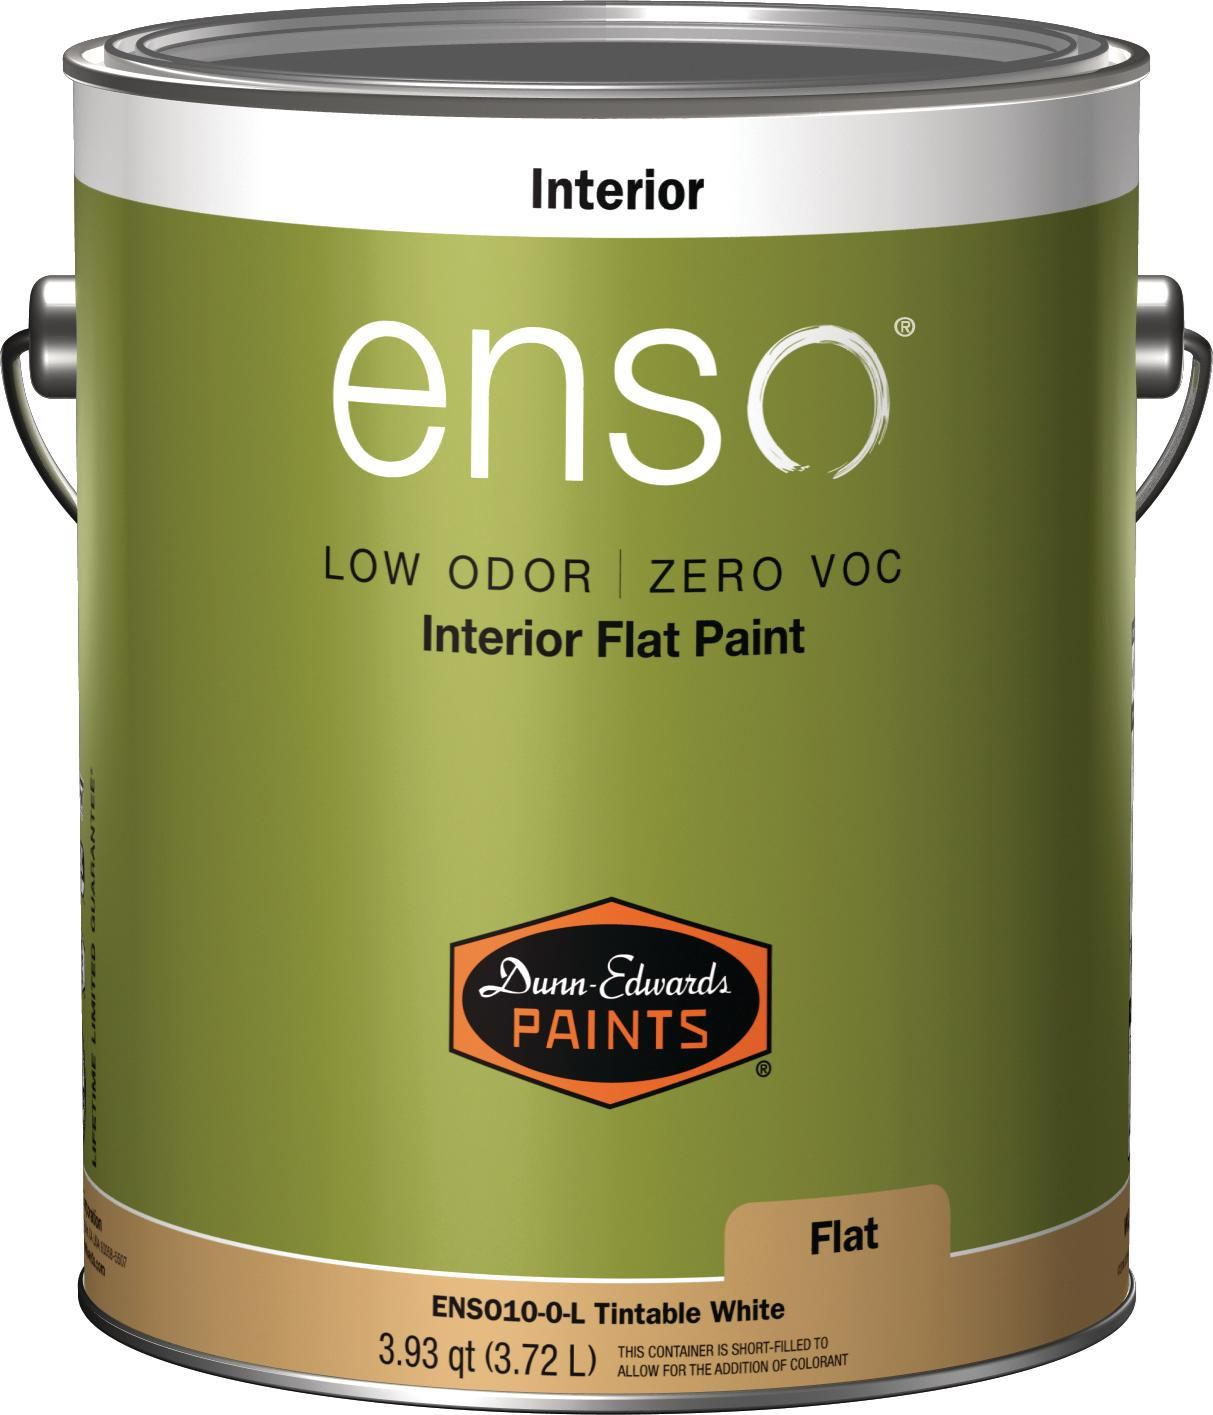 Zero-VOC Paint From Dunn-Edwards